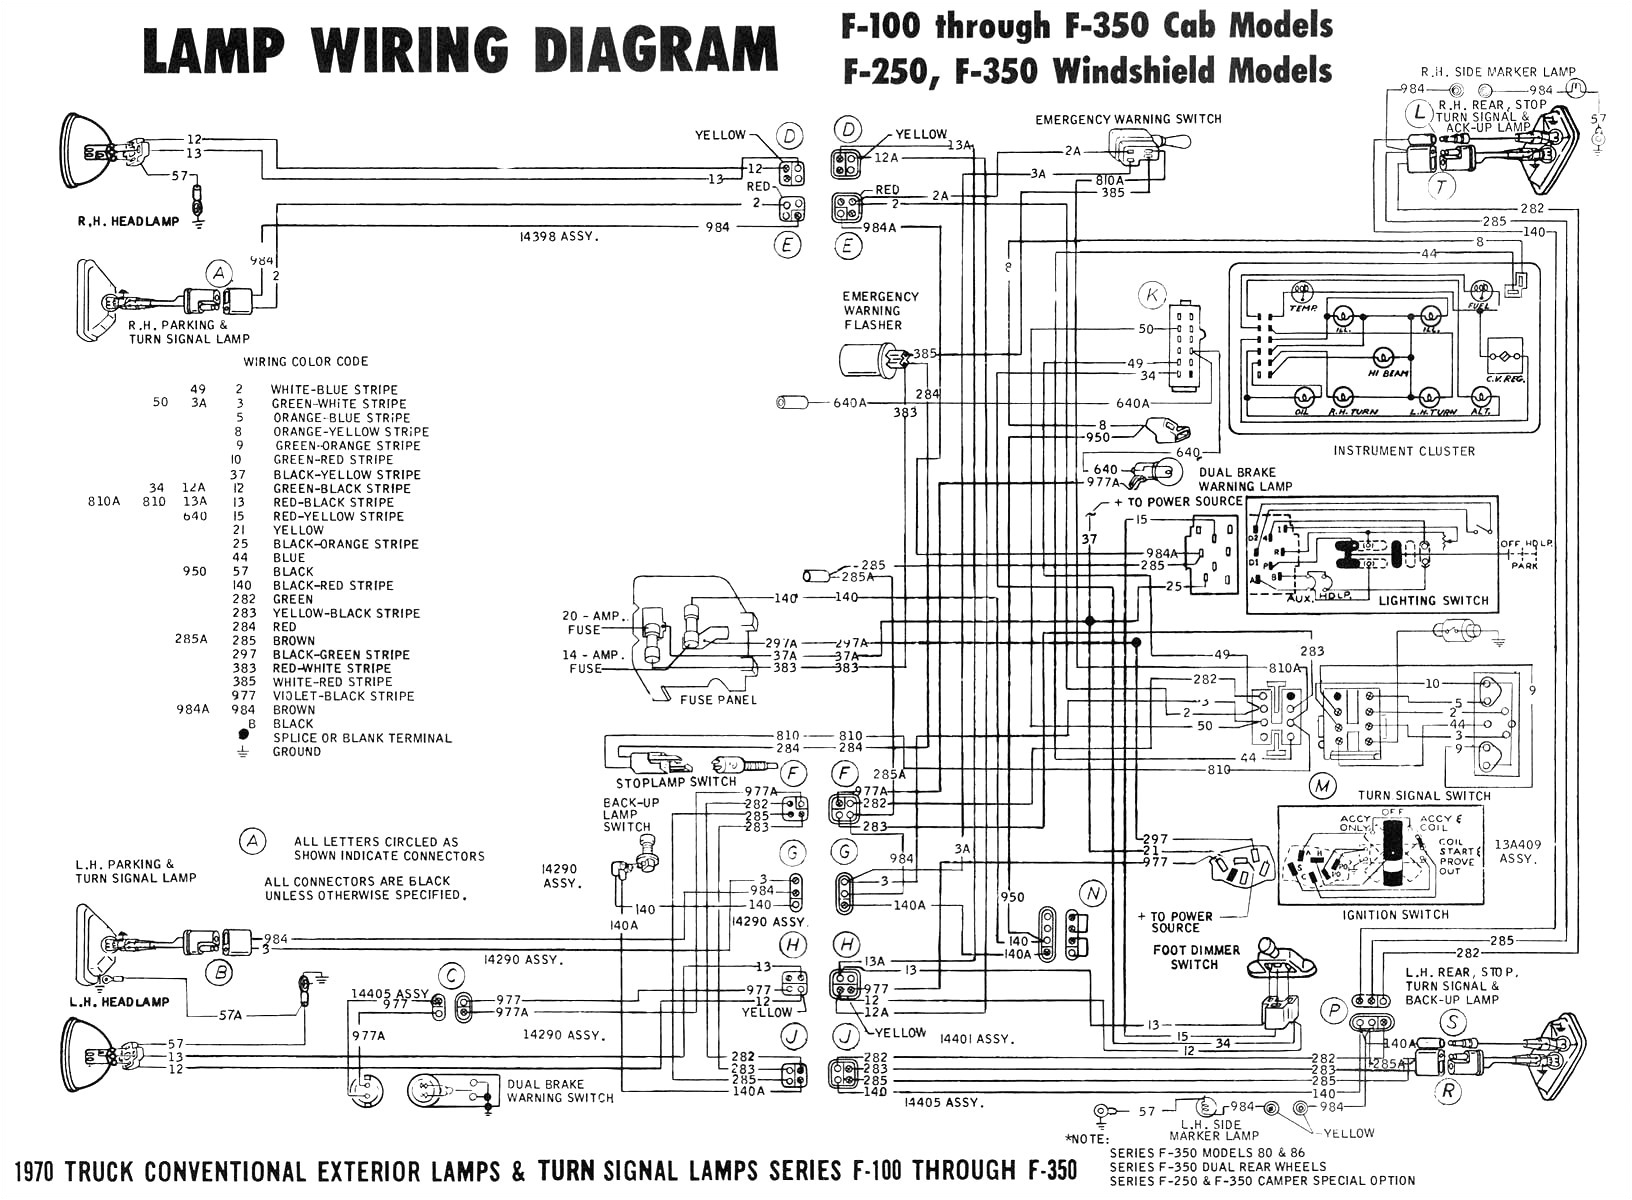 1993 f150 trailer wiring harness diagram wiring diagram article 1997 ford f 150 power window switch